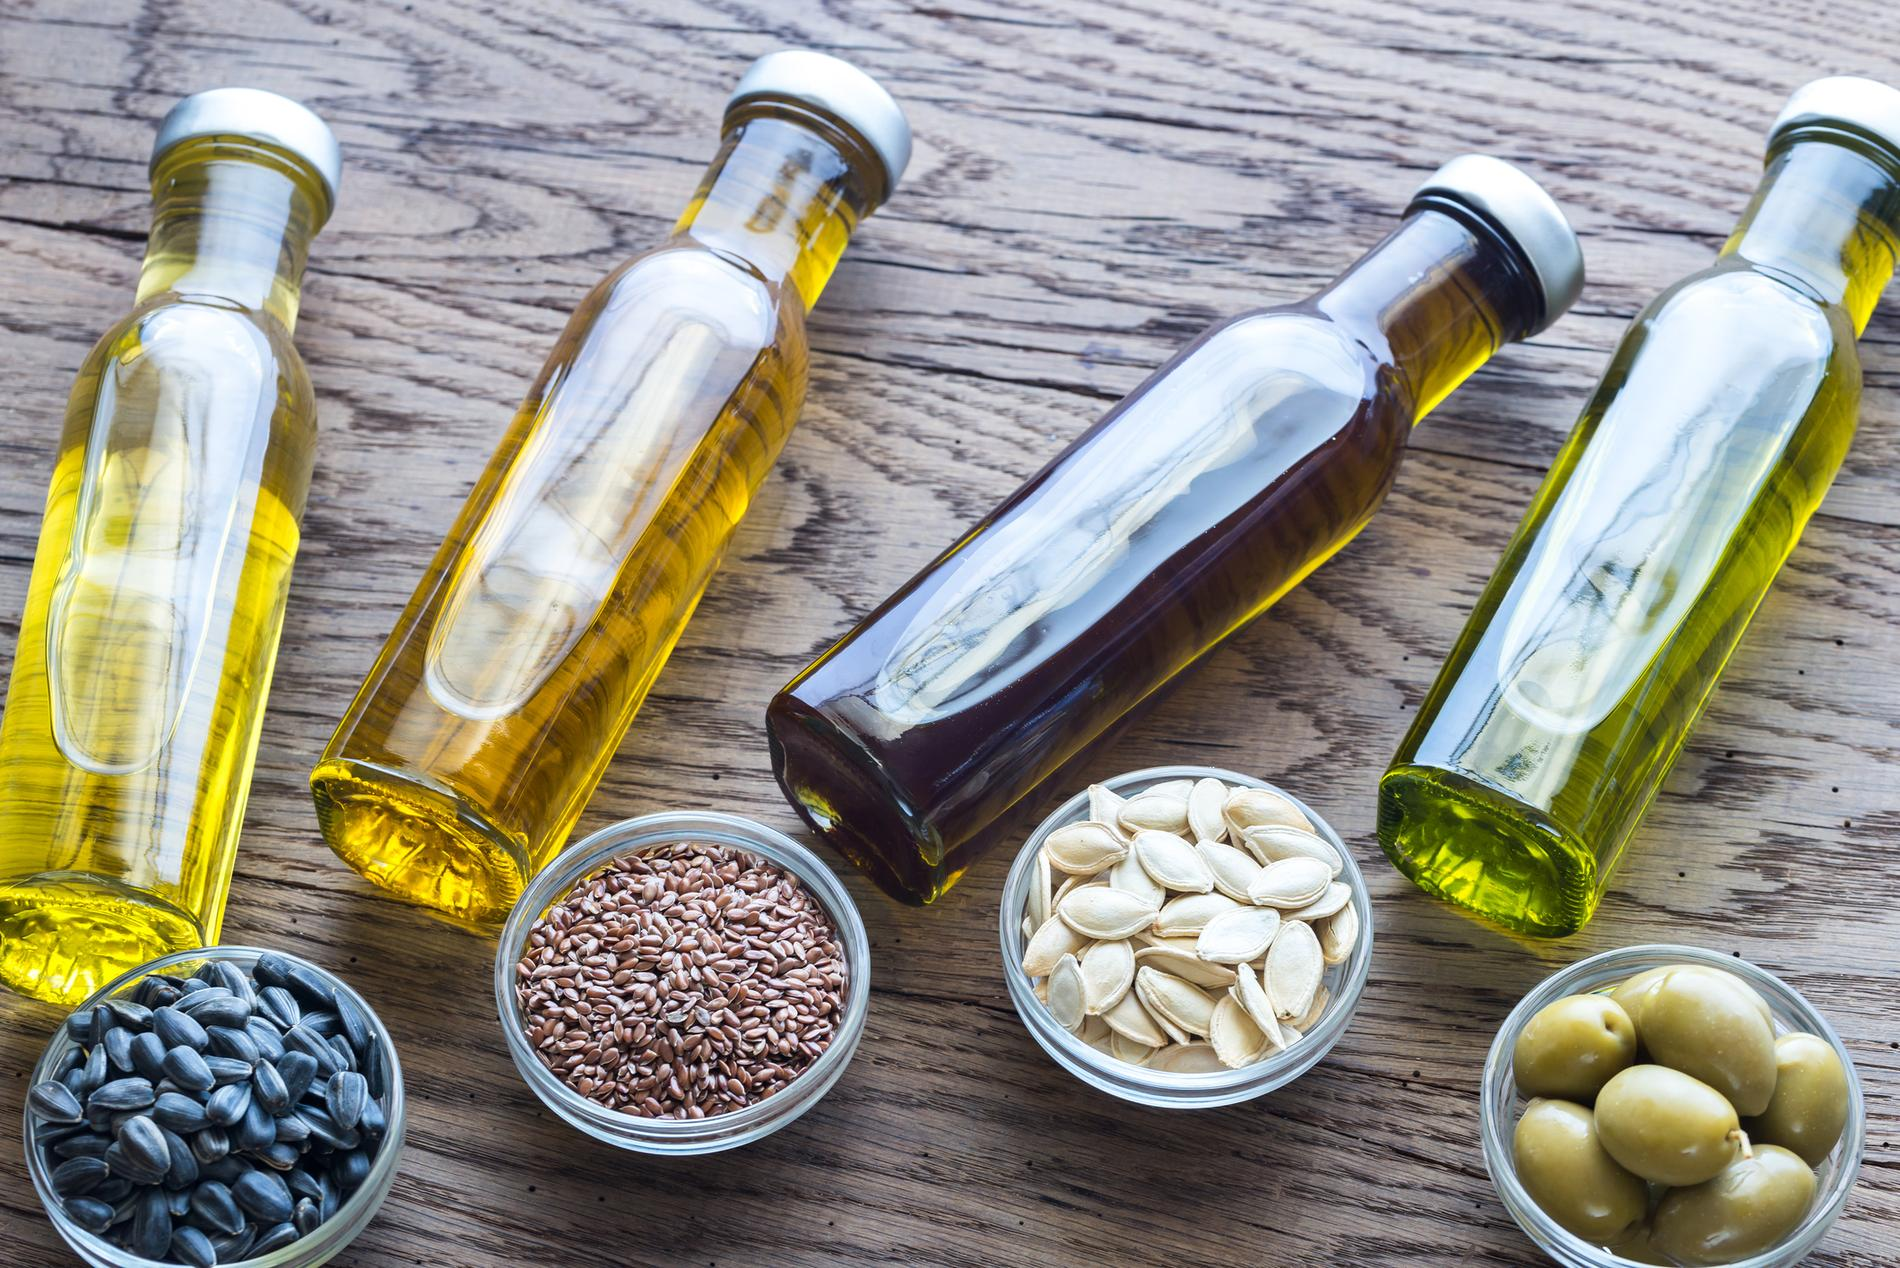 Flax, walnuts, peanuts ... Which vegetable oils to choose according to ...